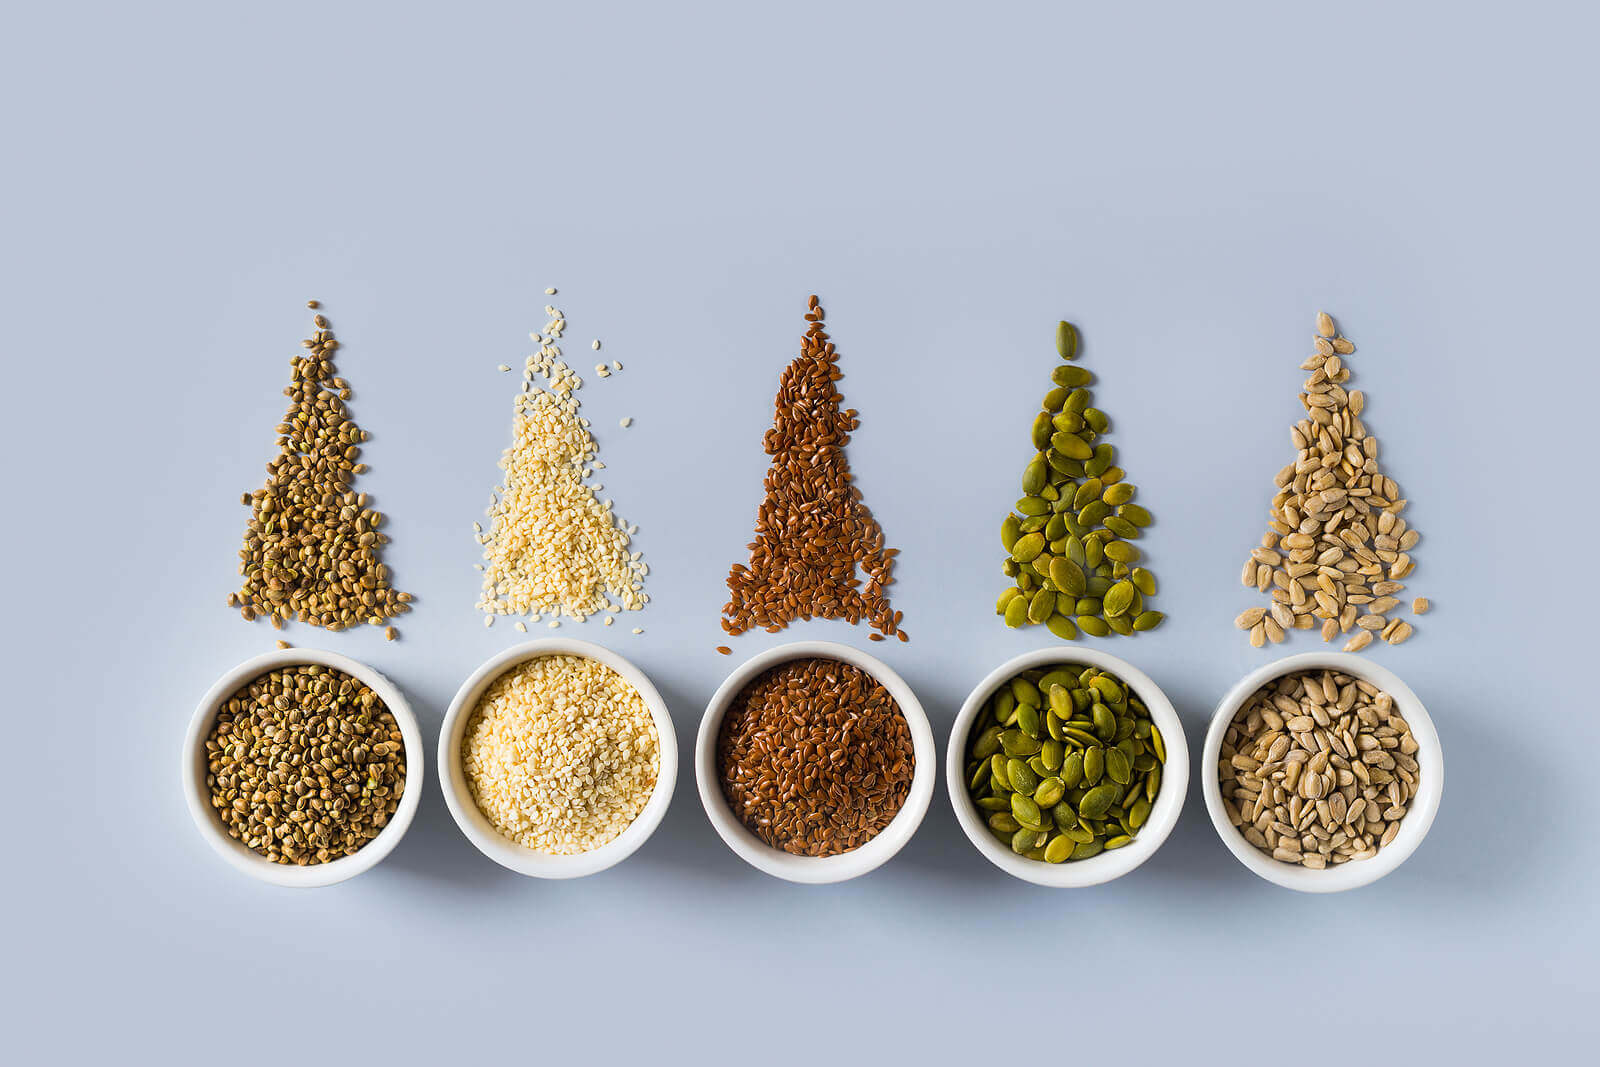 Eating seeds provides significant quantities of many important nutrients.